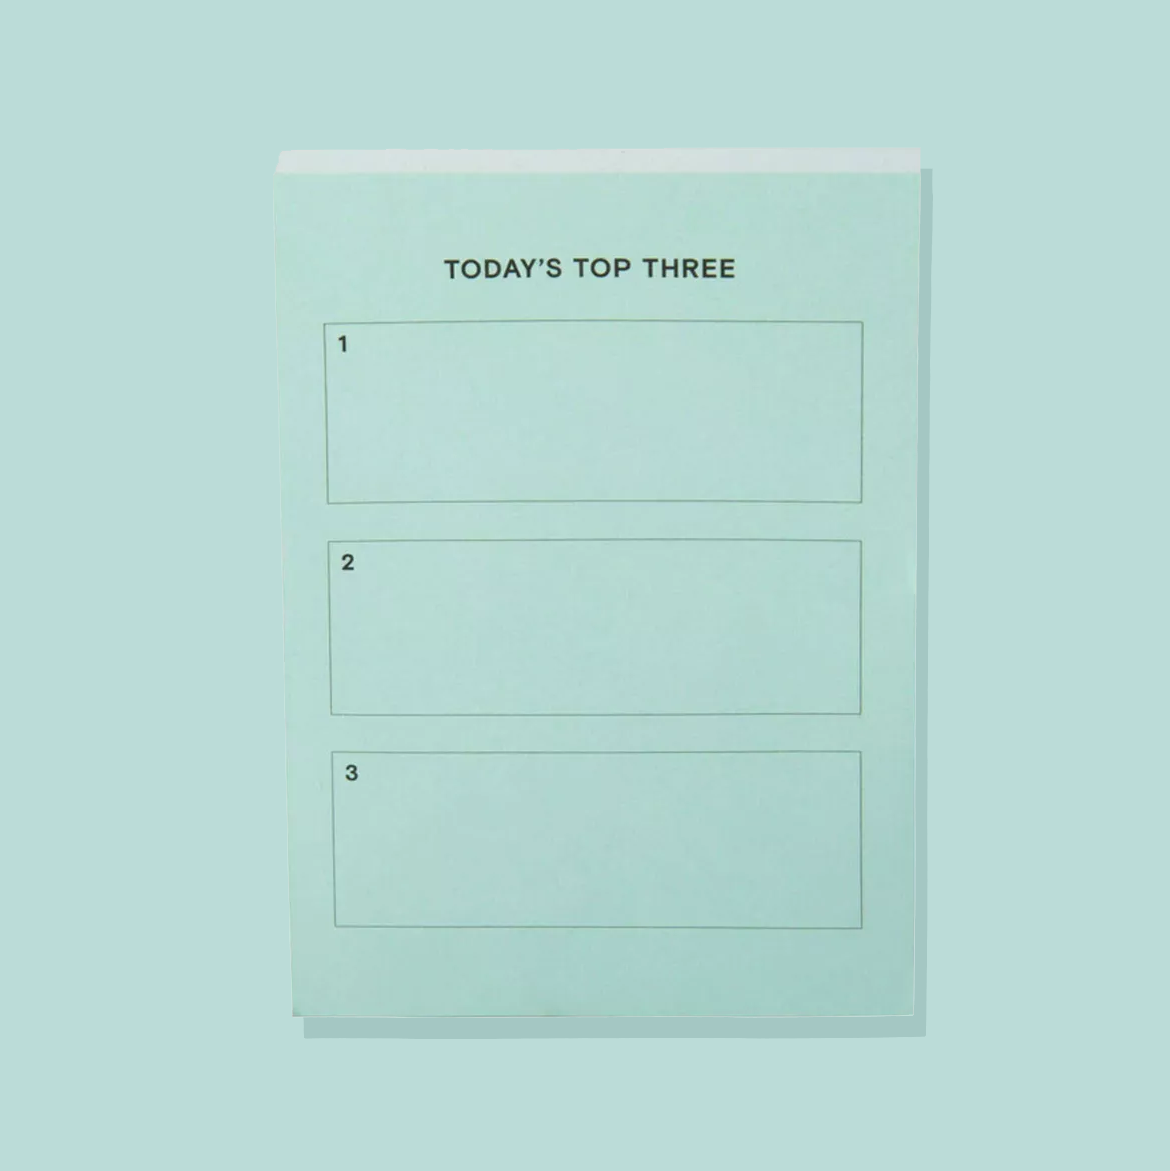 notepad that has three spaces and says today's top three